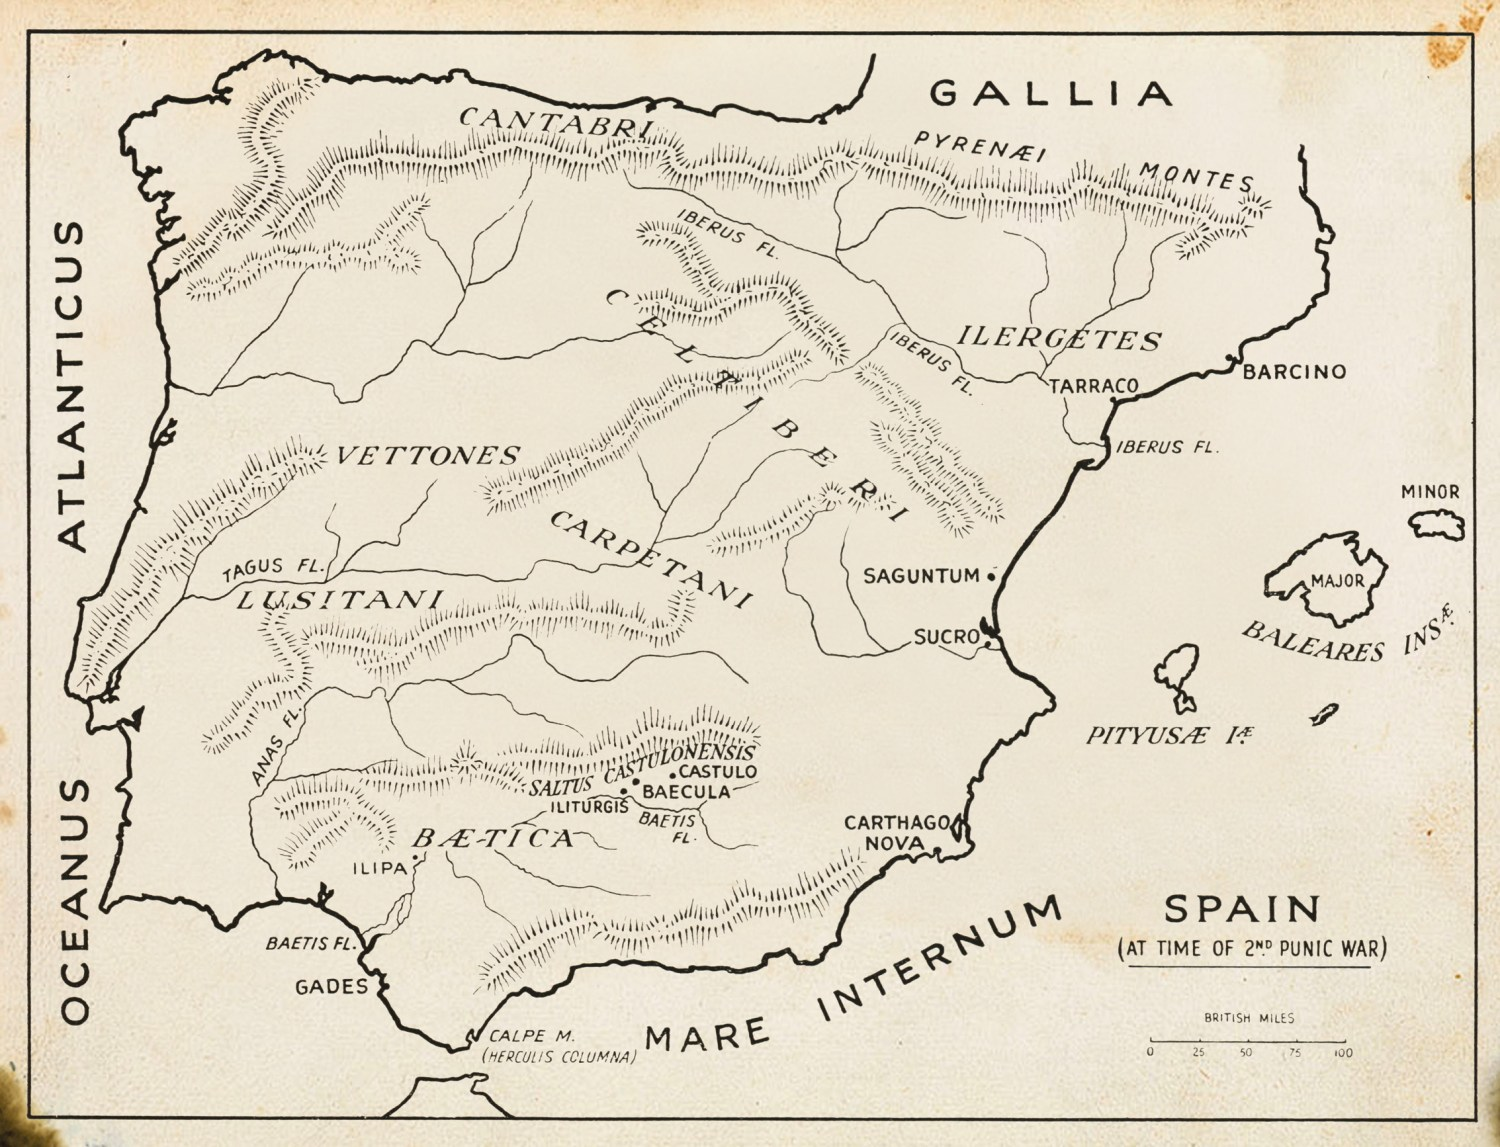 Opposite Scipio Africanus. The bust is Roman, but the portrait is not contemporary, so we cannot be certain it is a true likeness. BELOW Map of Spain during the Second Punic War showing the sites of major engagements.